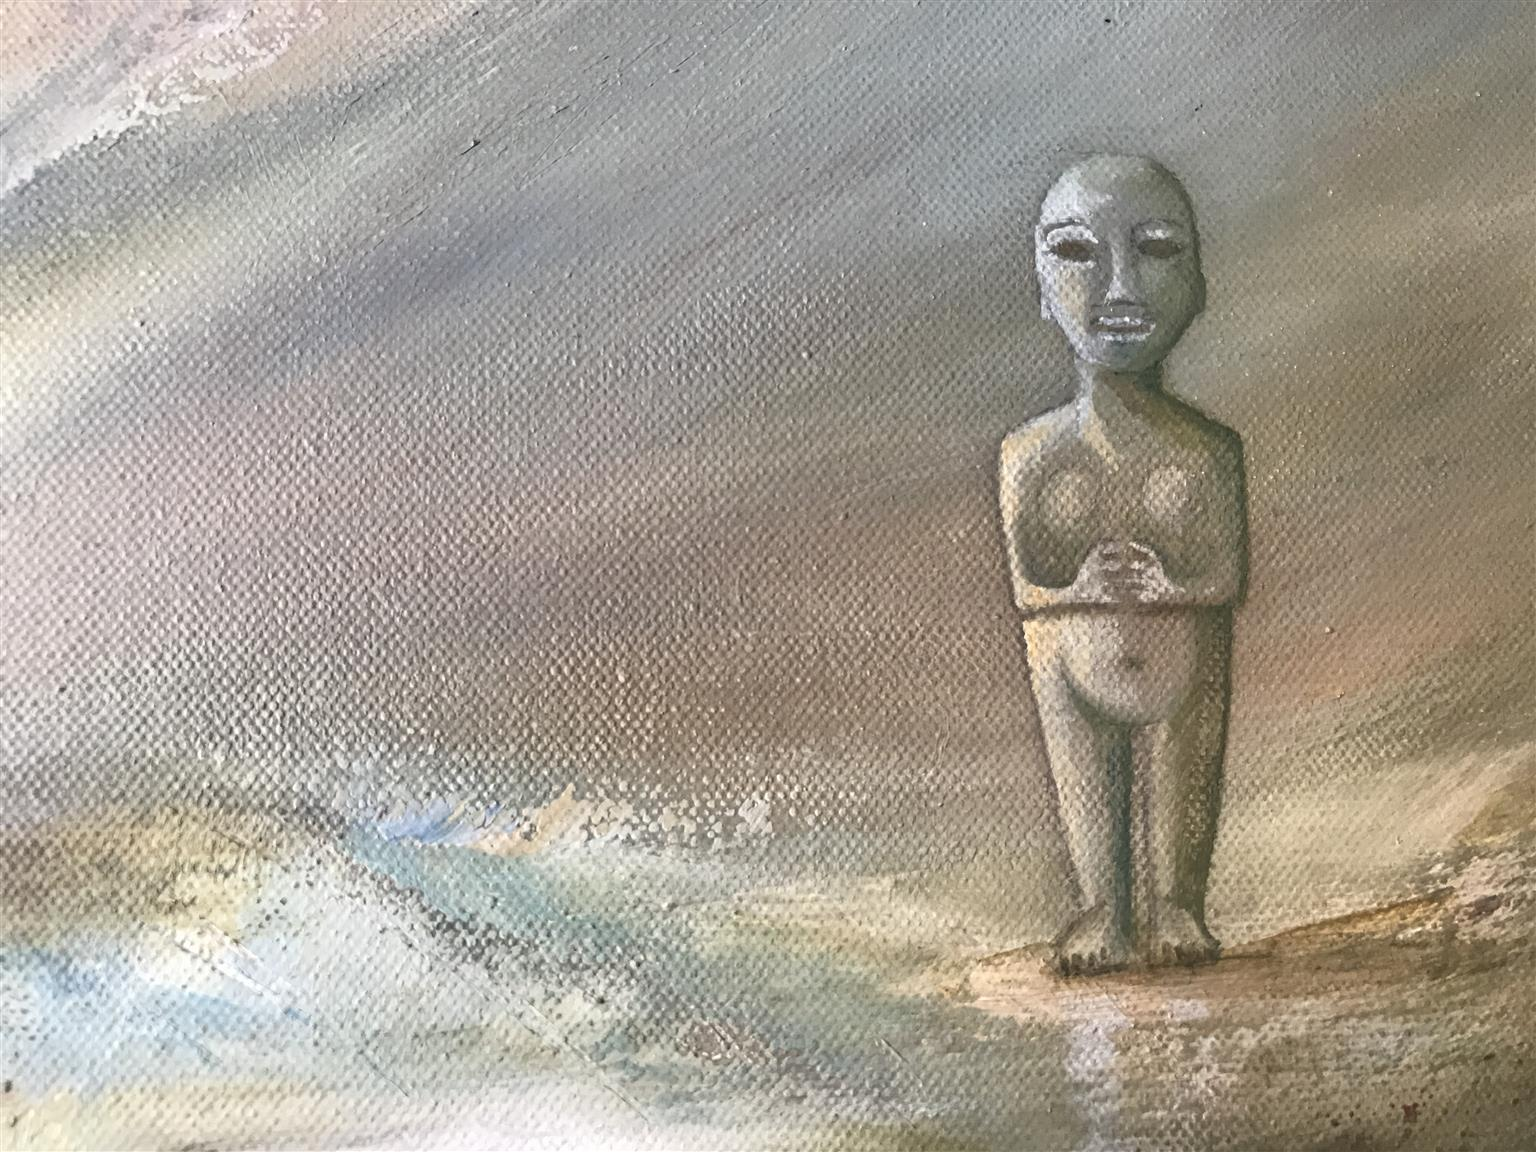 OIL PAINTING - NEVER ALONE